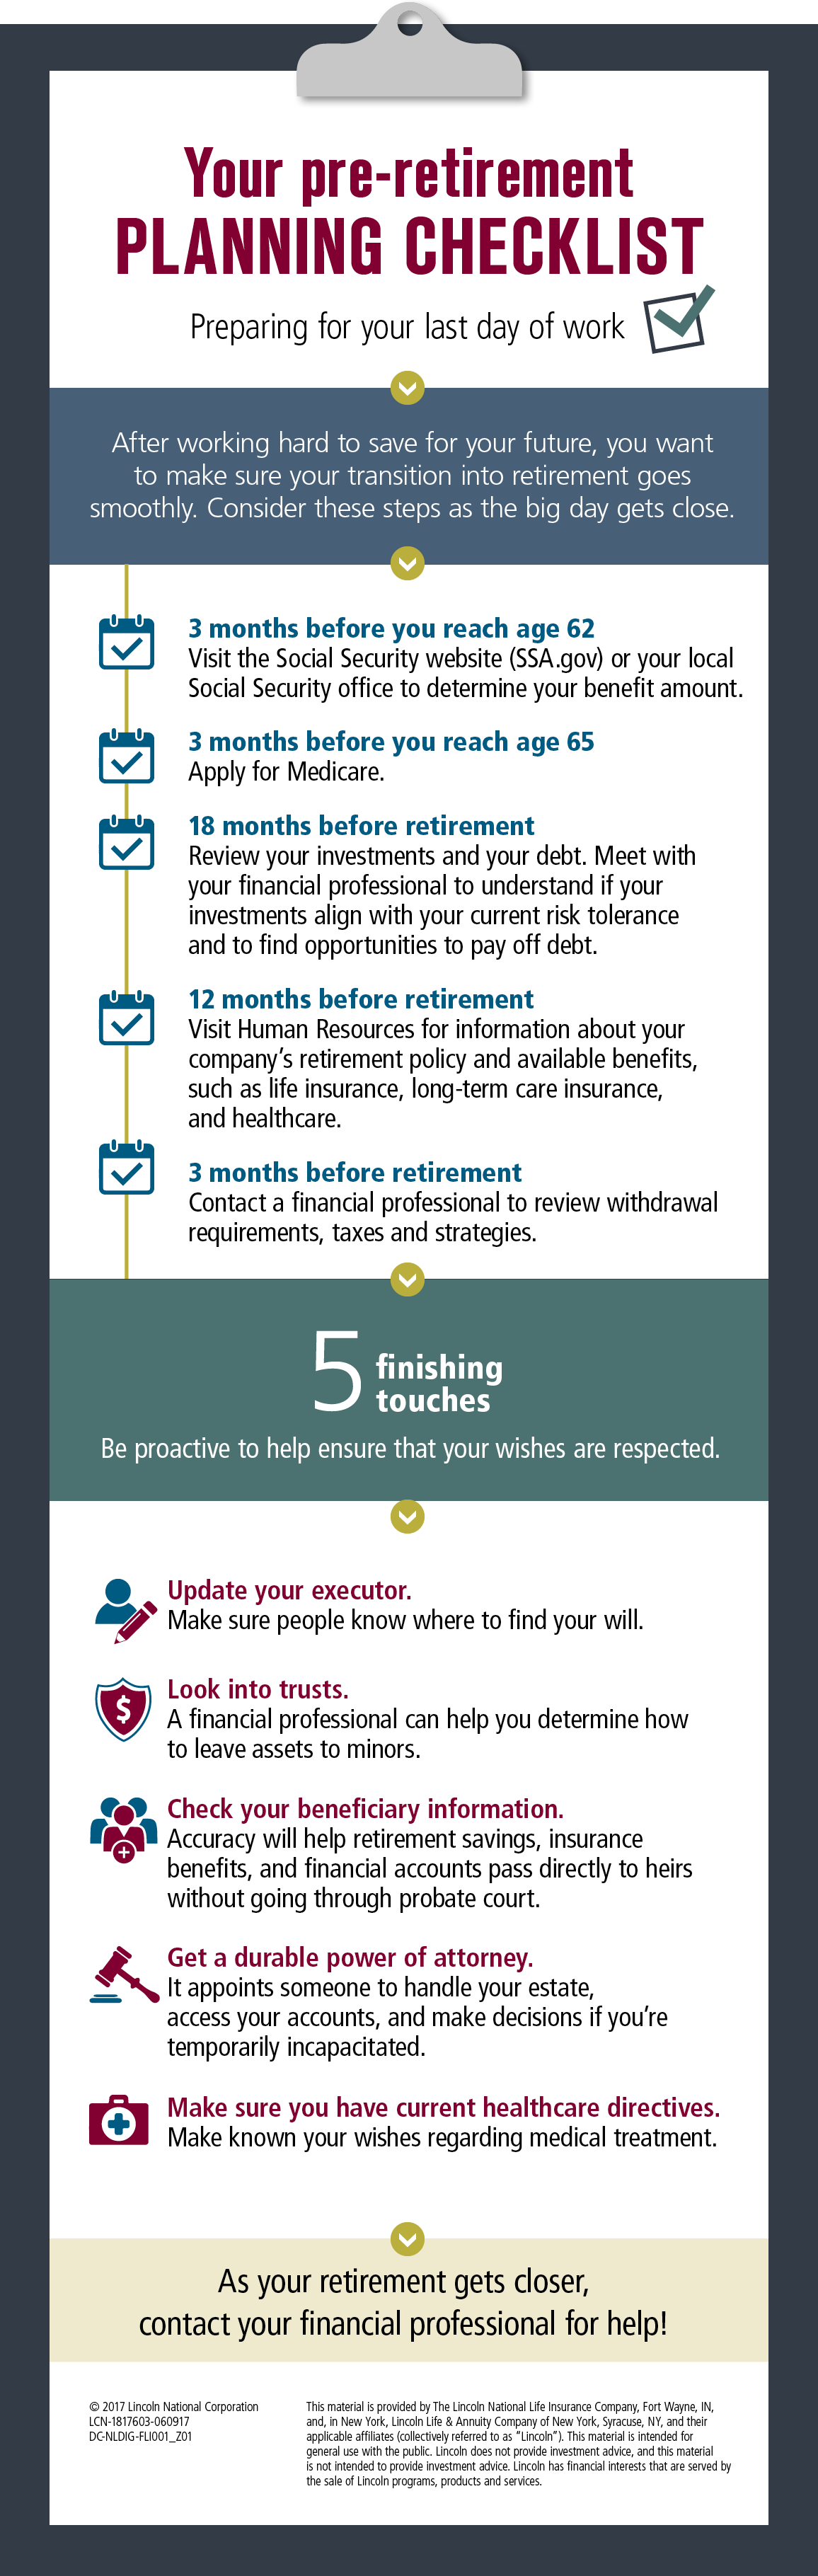 Your pre-retirement planning checklist